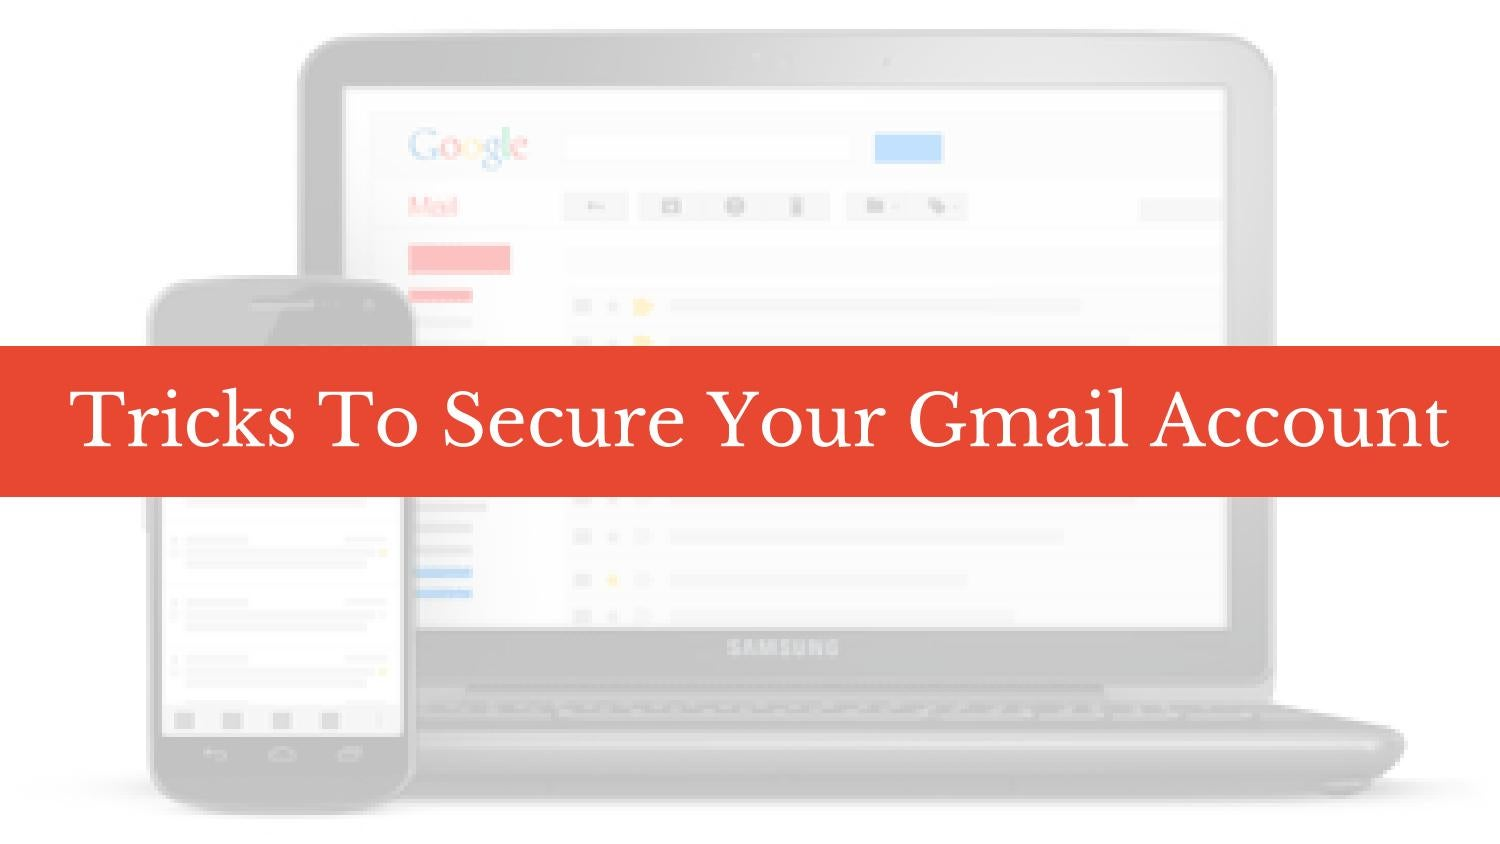 How To Keep Secure Gmail Account-2 Step Verification